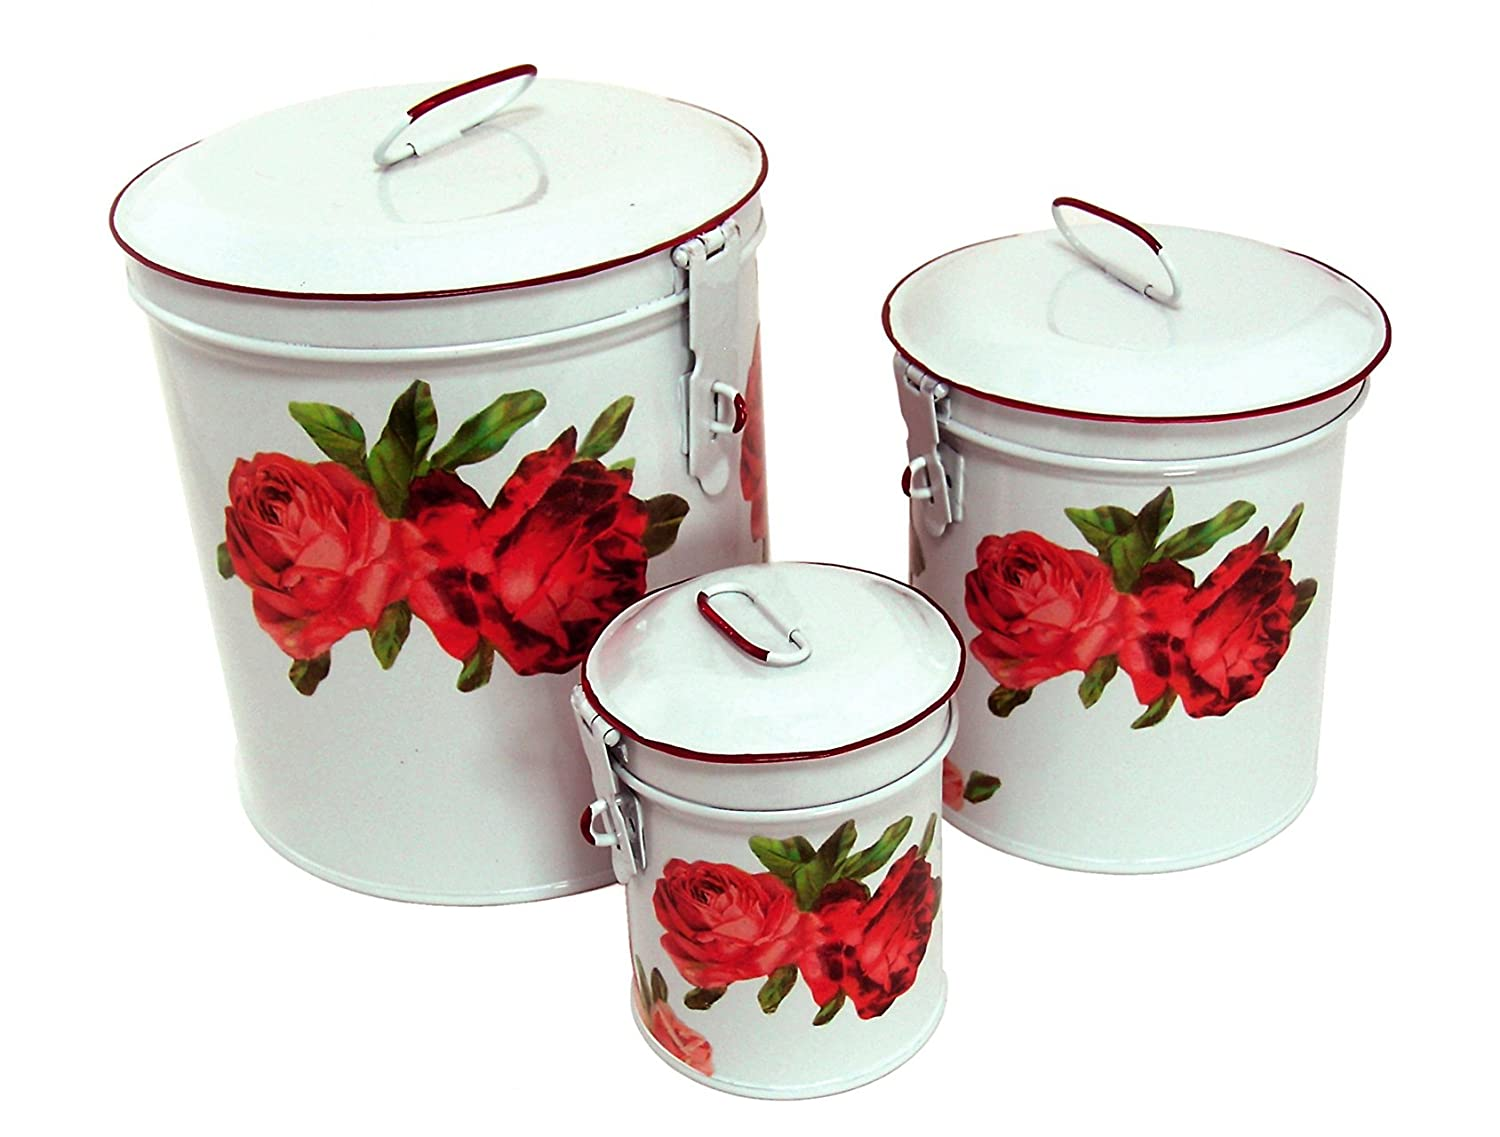 Amazon.com: White Canister Set w/ French Chic Red Roses, Vintage ...